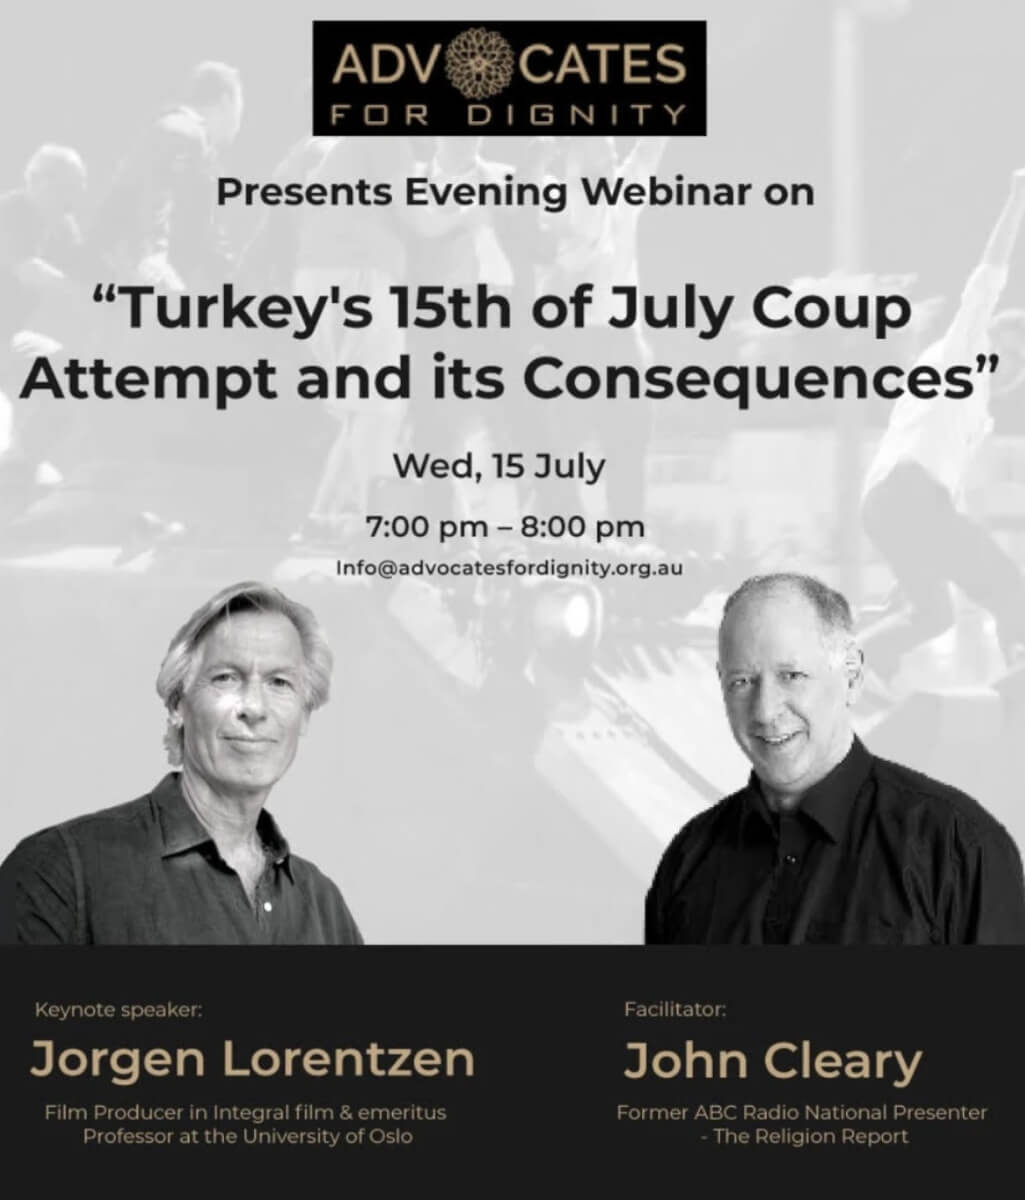 Four years on: Turkey's 15 July coup attempt and its consequences